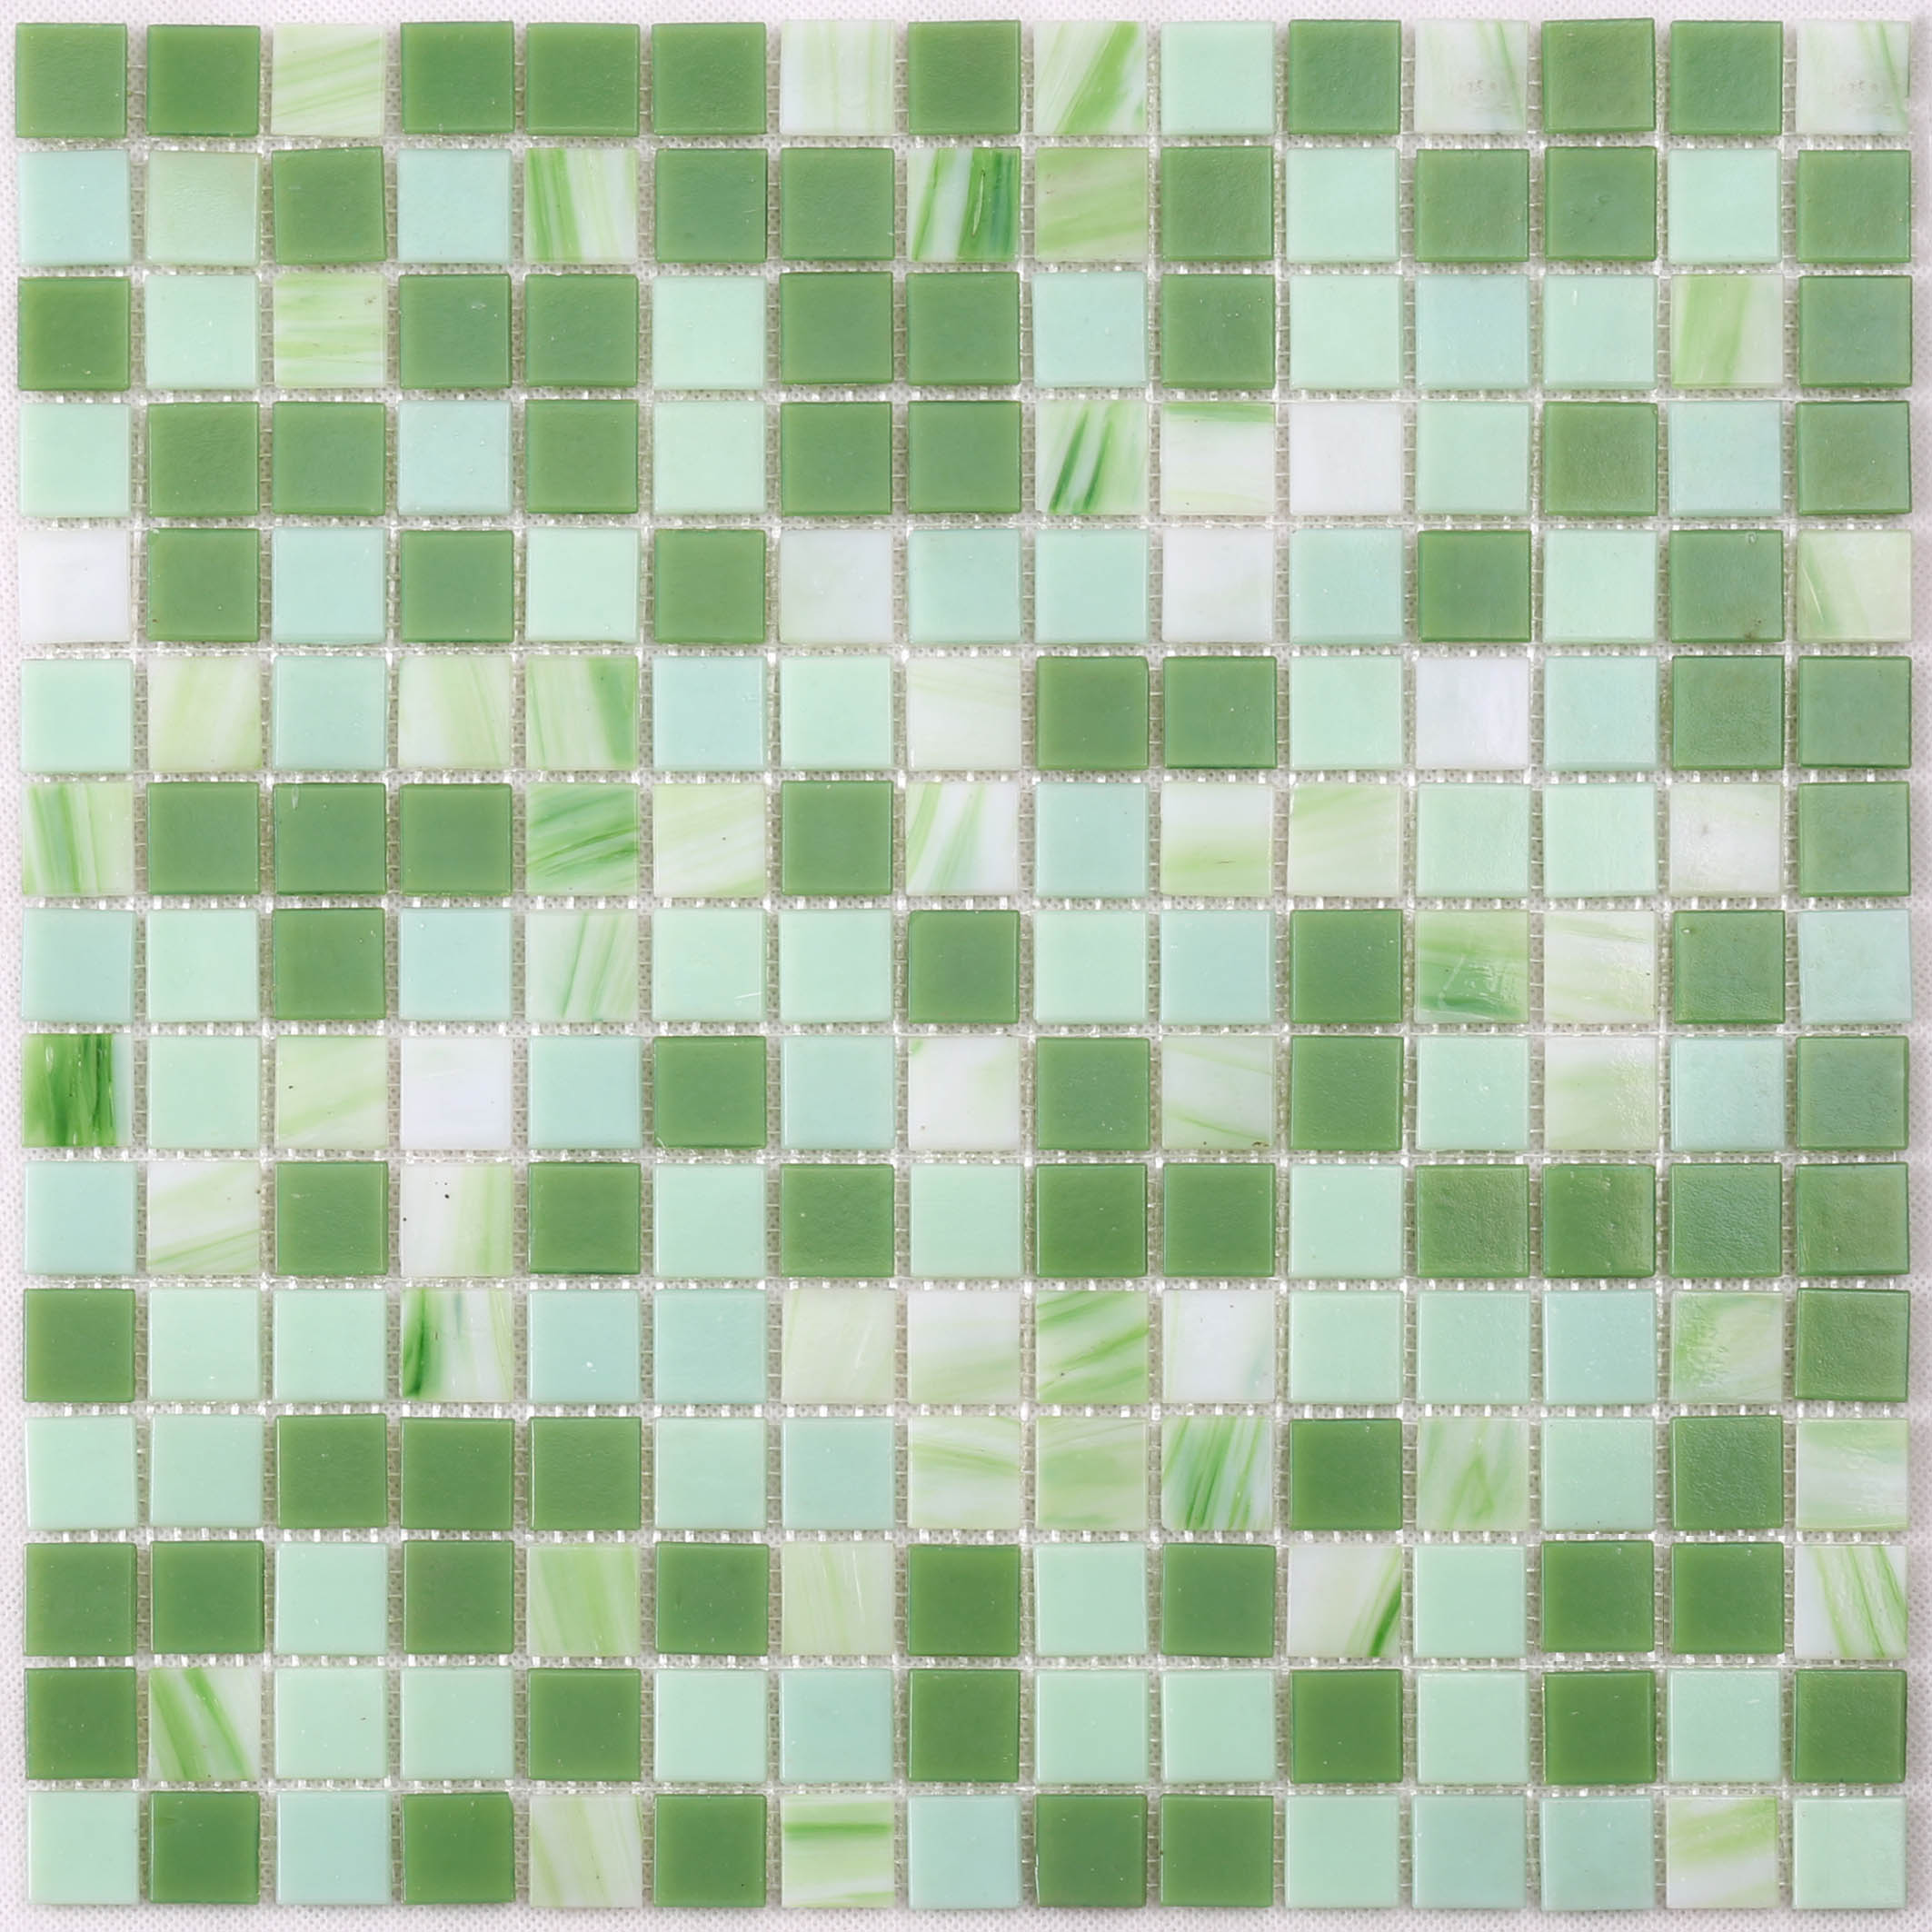 Heng Xing-Pool Step Tile, Pool Edge Tile Manufacturer | Pool Mosaic Tile